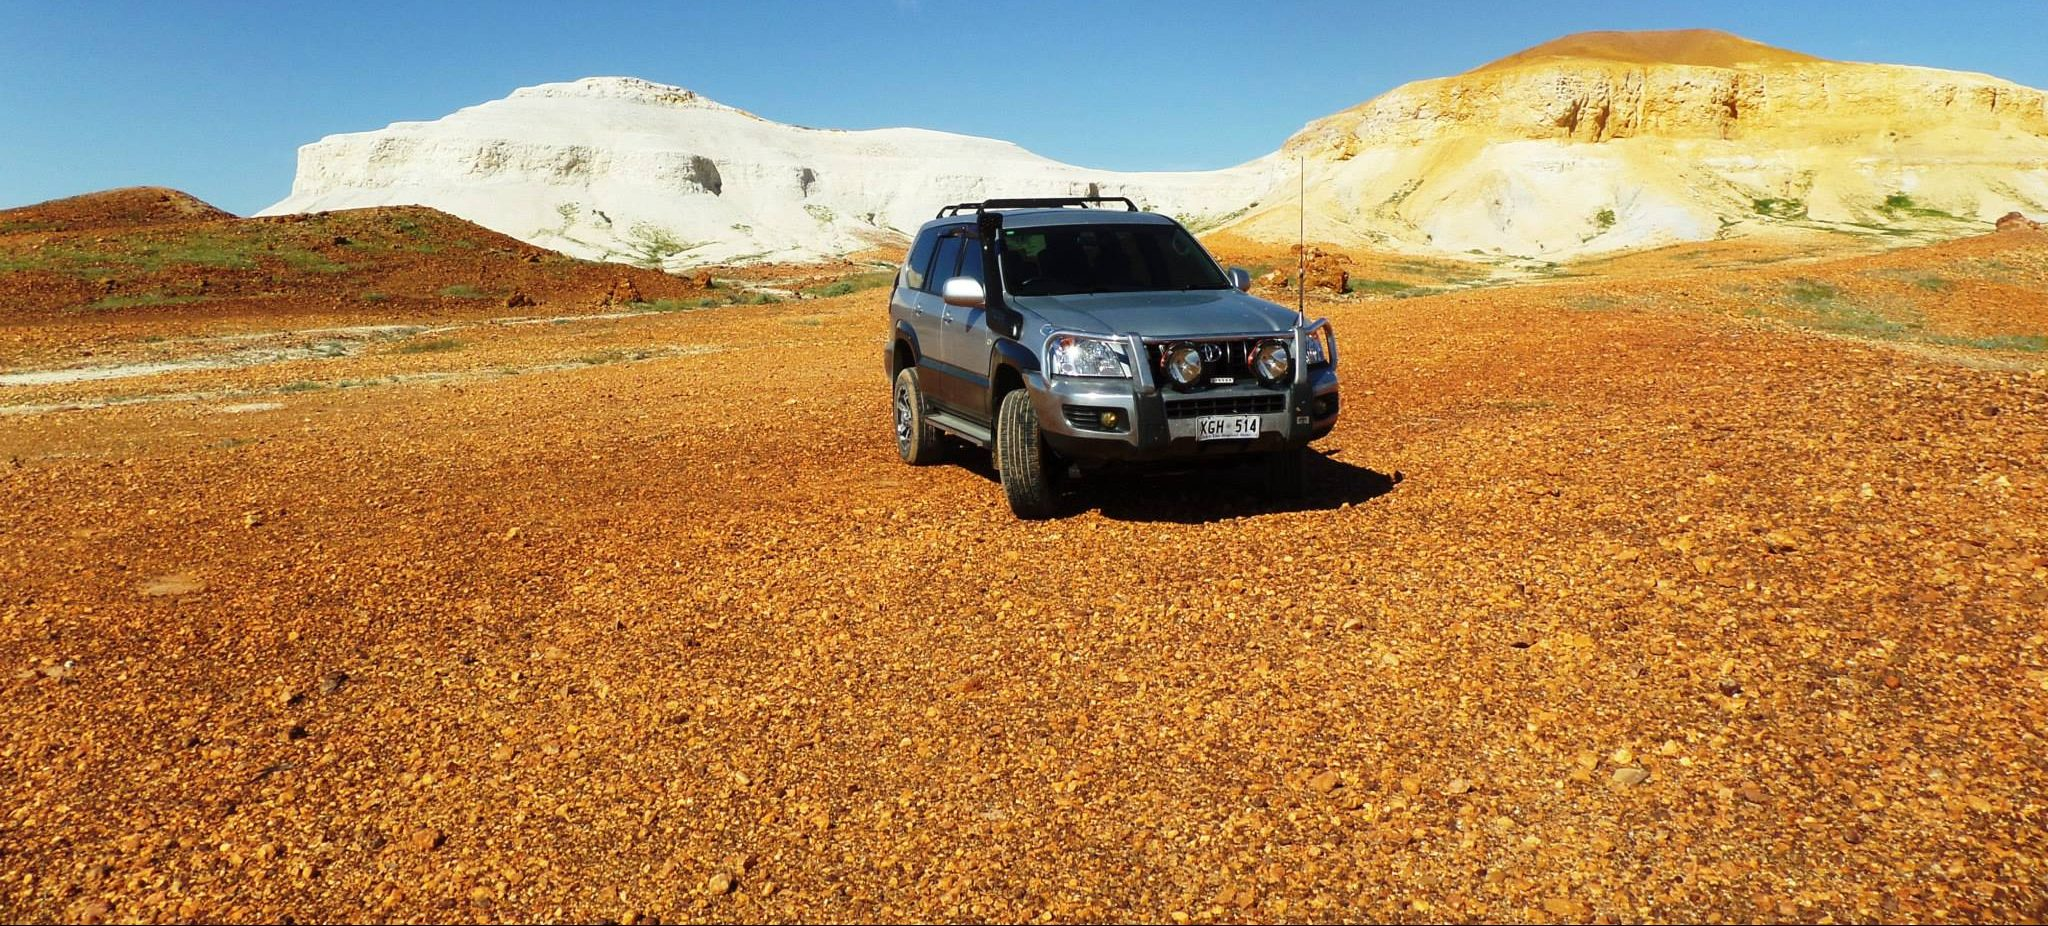 Australian Outback – Dirt stretched on for Miles!